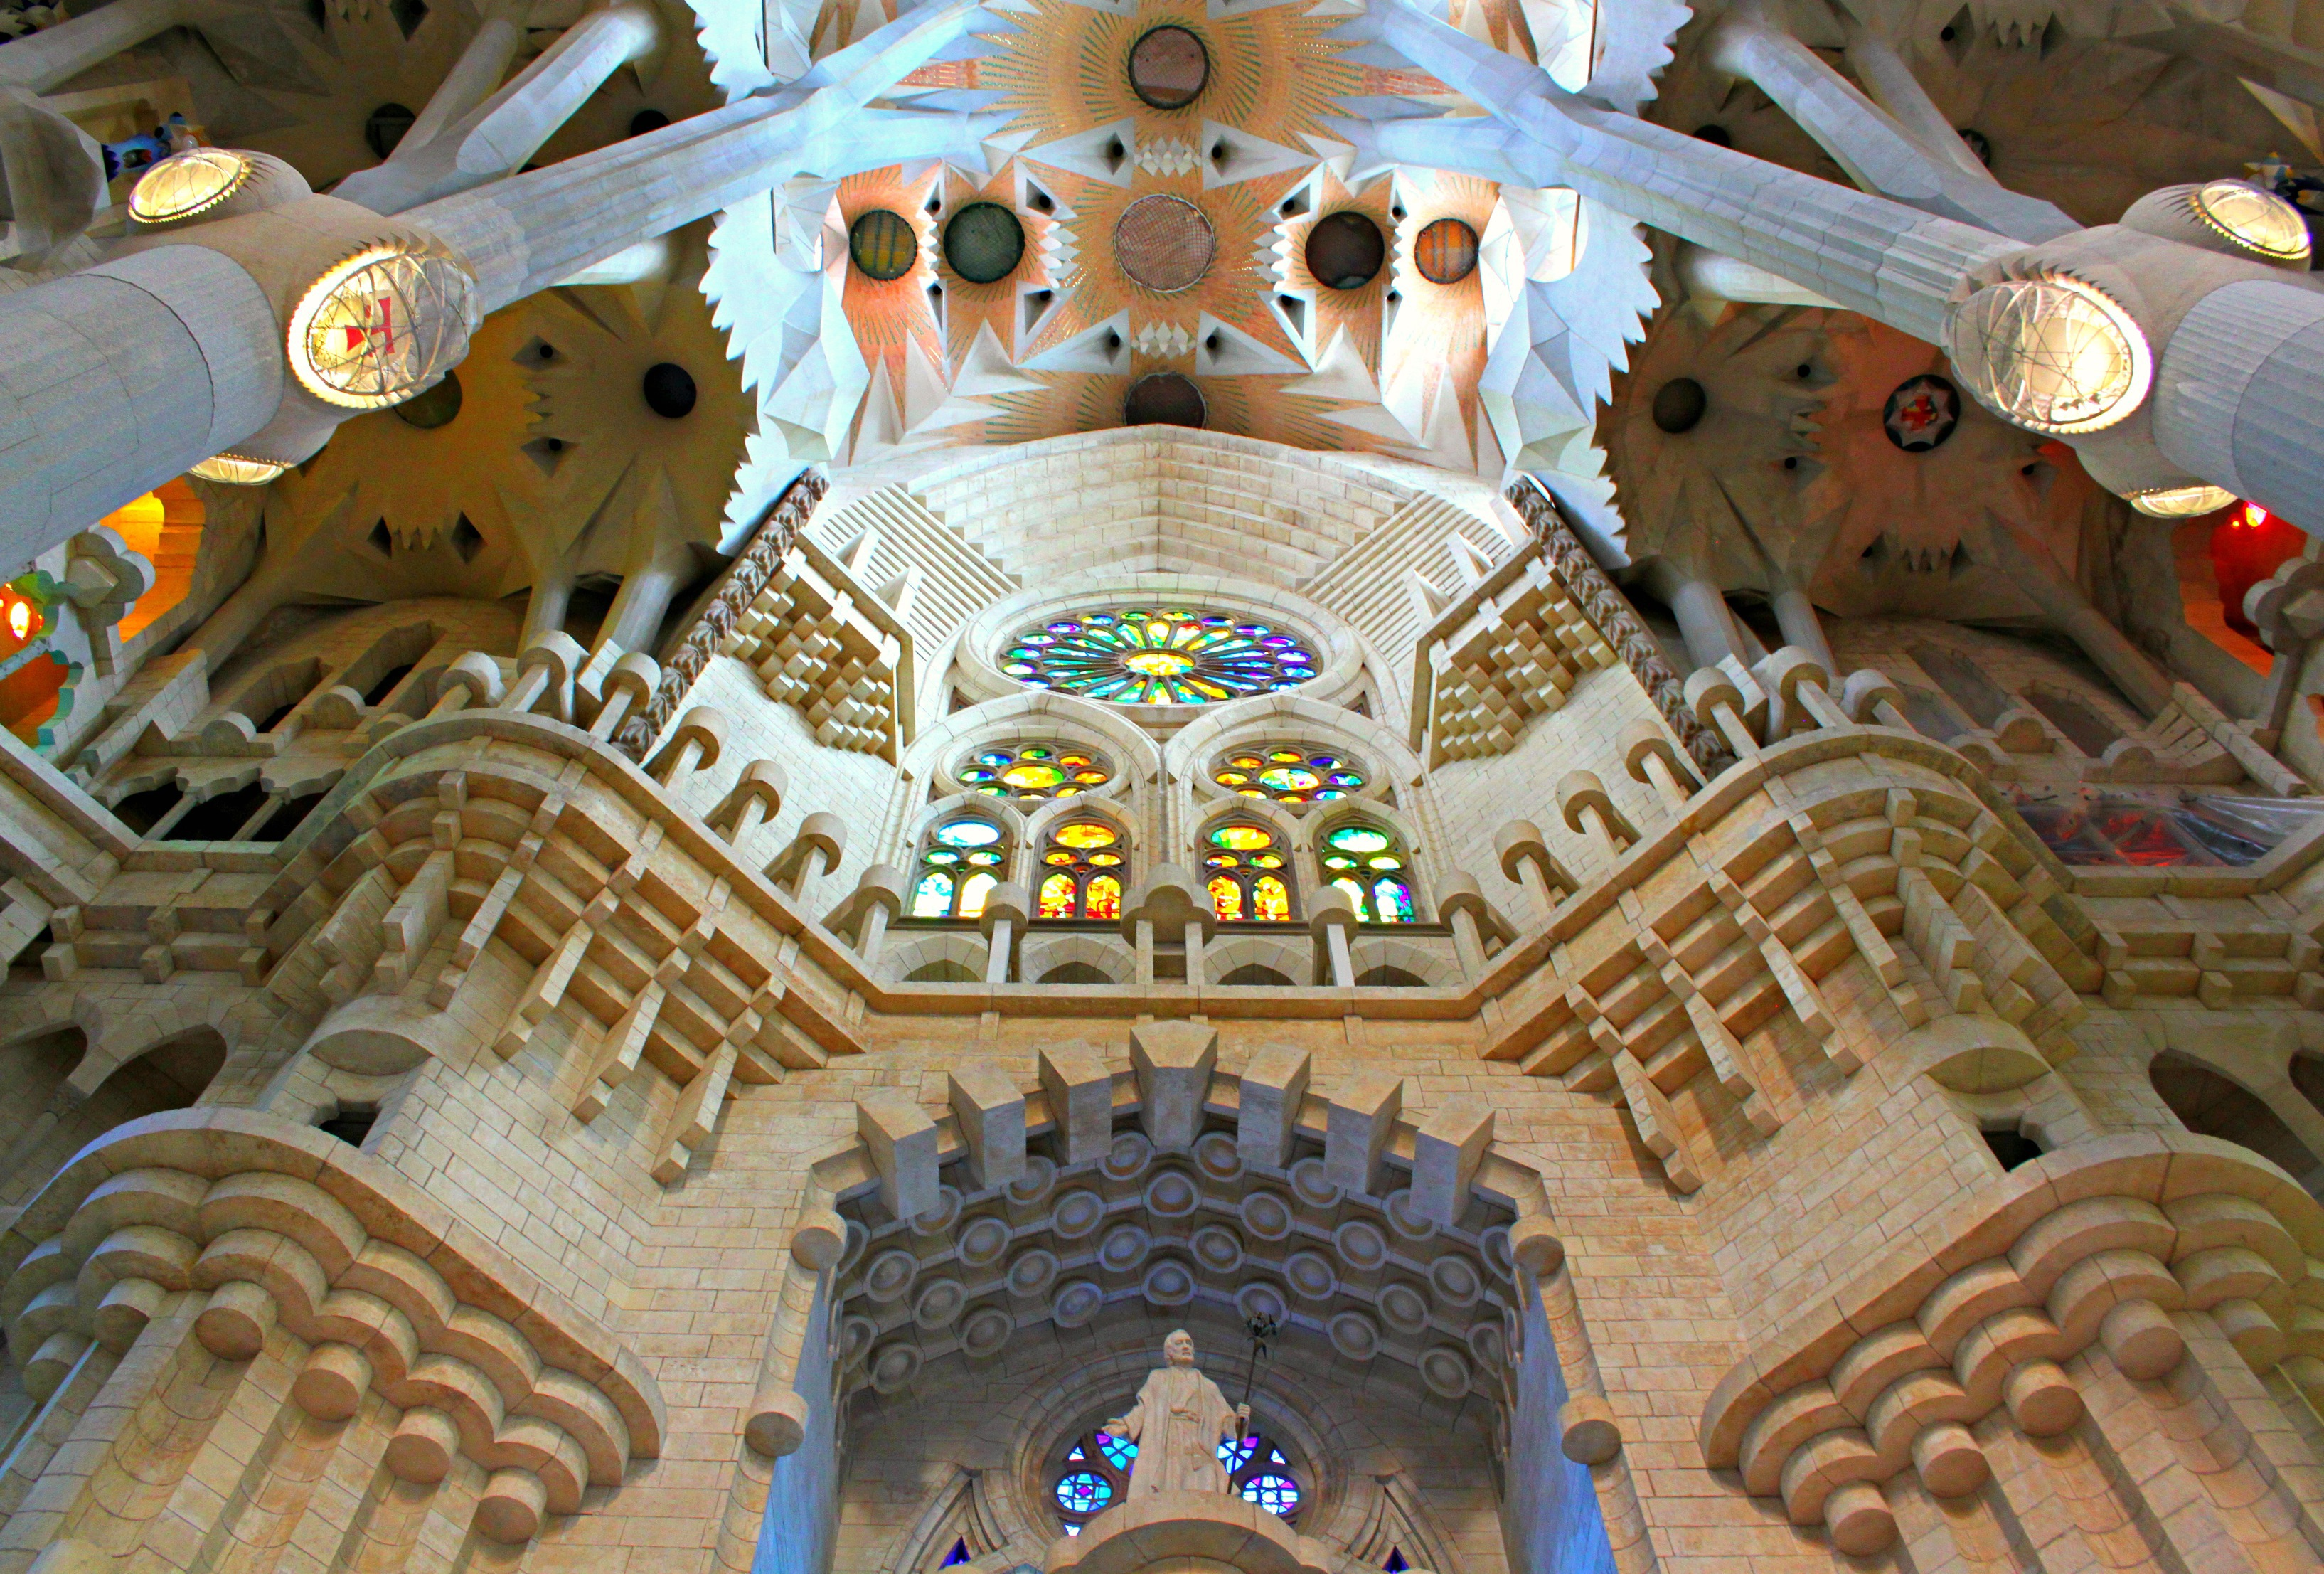 La Sagrada Familia Tickets Online Wiring Diagrams How To Build 123 Game All Mcufree Circuit Diagram The World Rh Weekendnotes Com Print